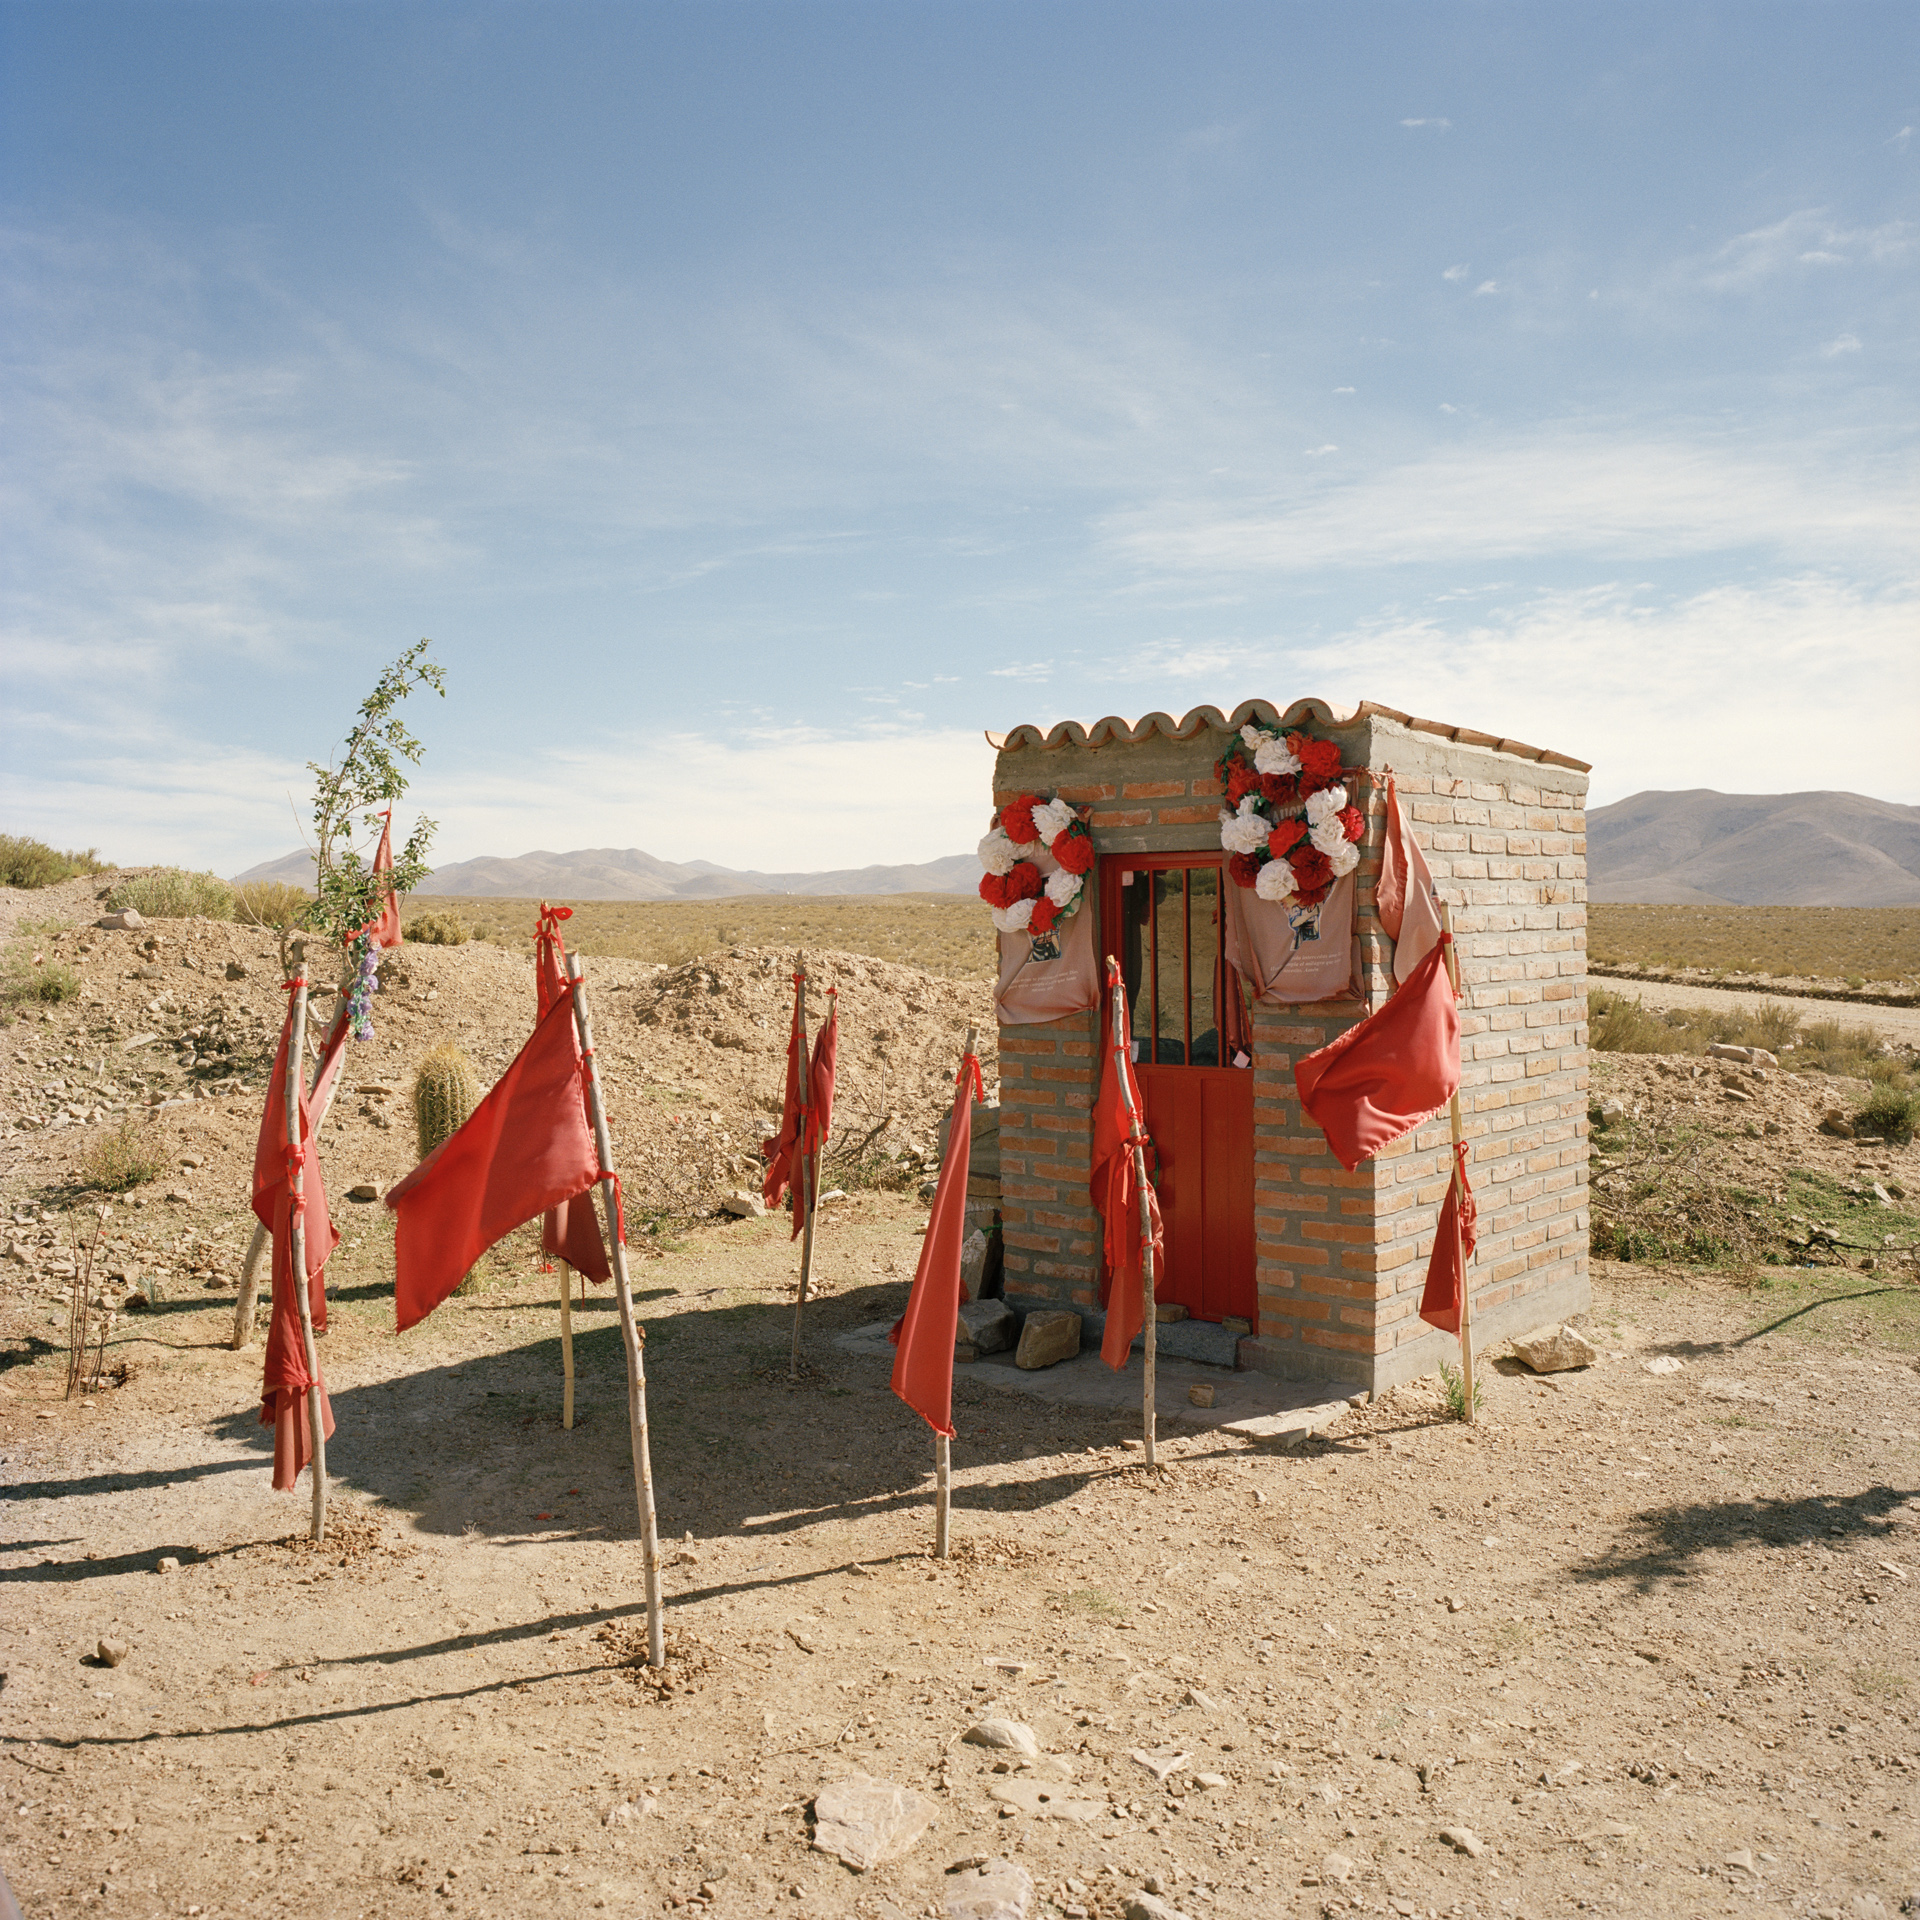 Jujuy Province. Roadside shrine for Gauchito Gil, the famous Argentian outlaw folk hero.